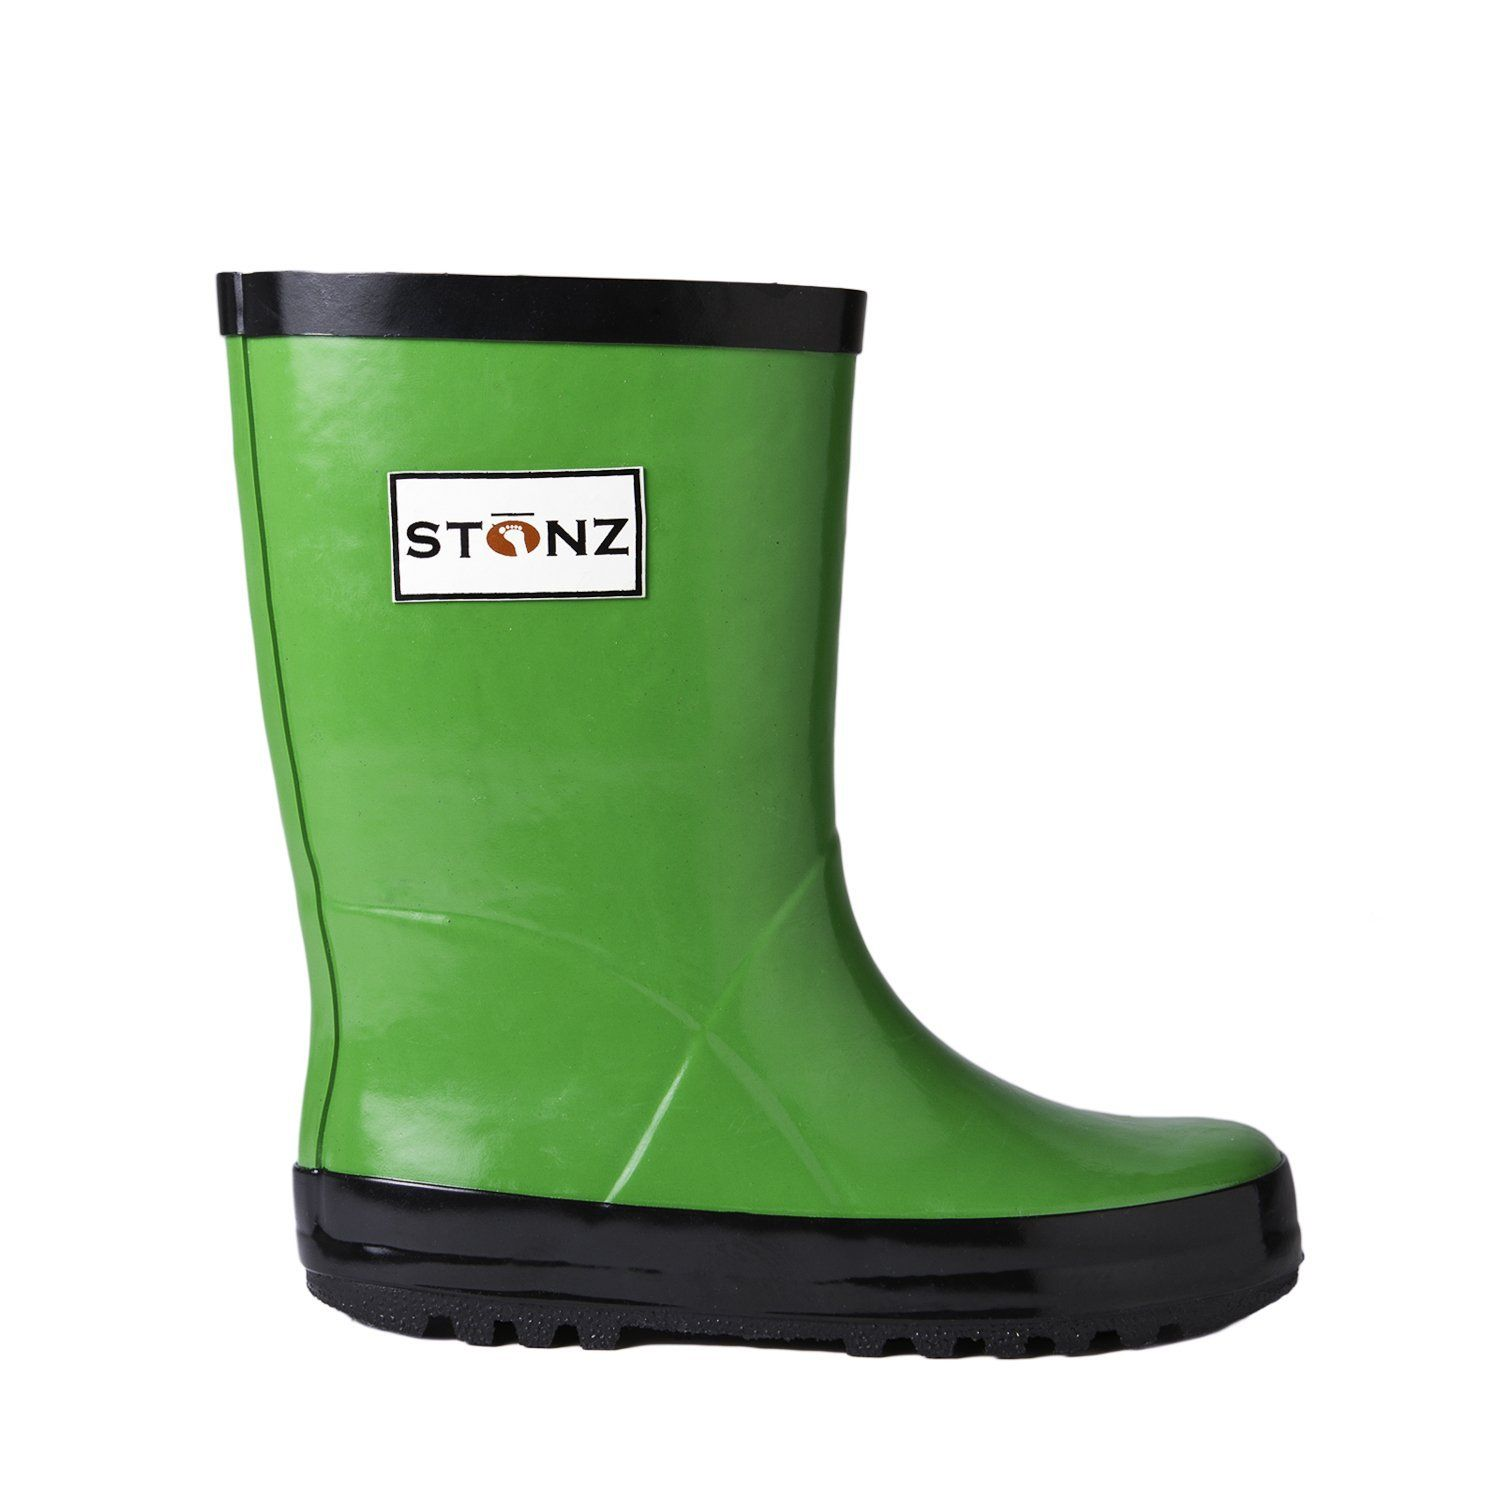 52b68f6b28c Stonz Natural Rubber Rain Boot (Toddler/Little Kid/Big Kid) ^^ Check ...